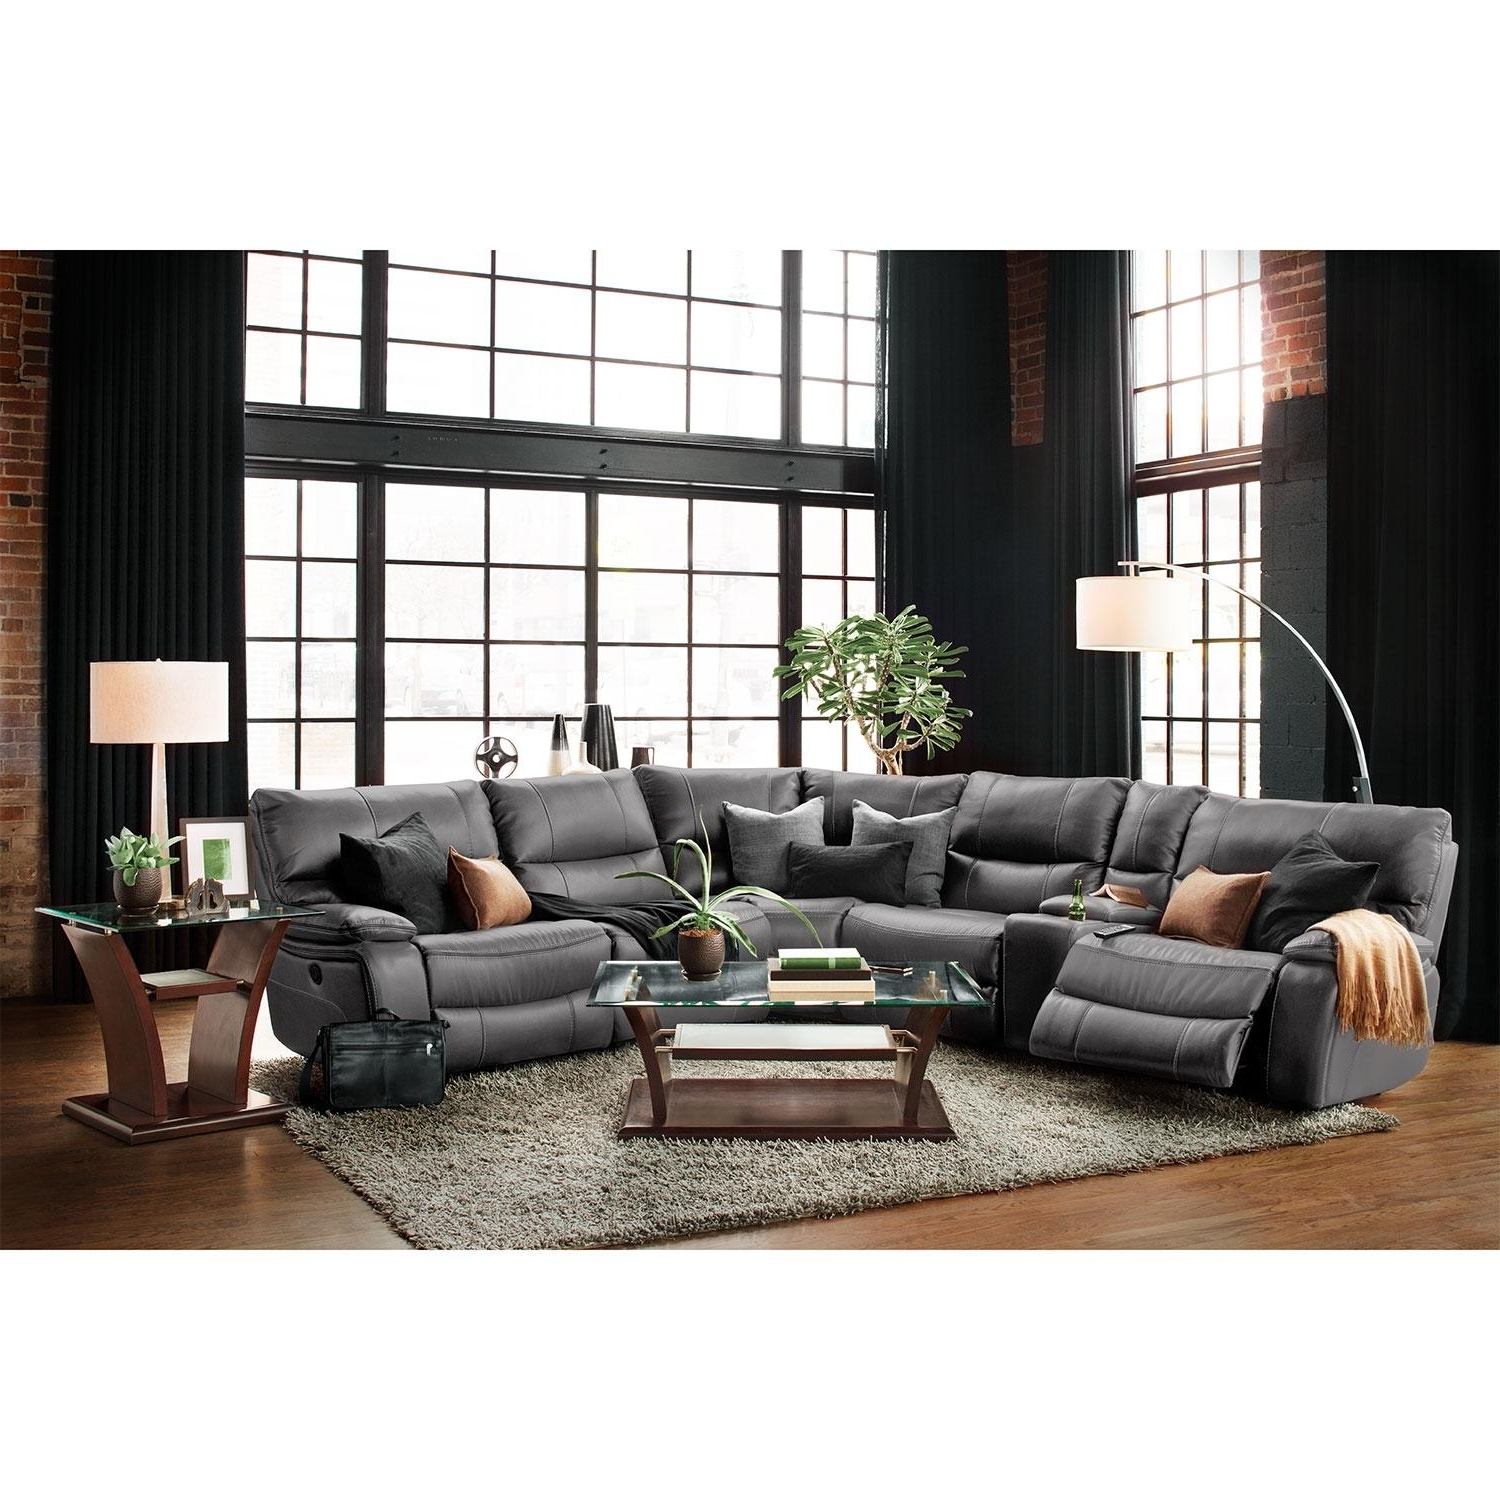 Preferred Furniture : Sectional Couch Costco Best Of La Z Boy Aspen Seven Intended For Victoria Bc Sectional Sofas (View 7 of 15)